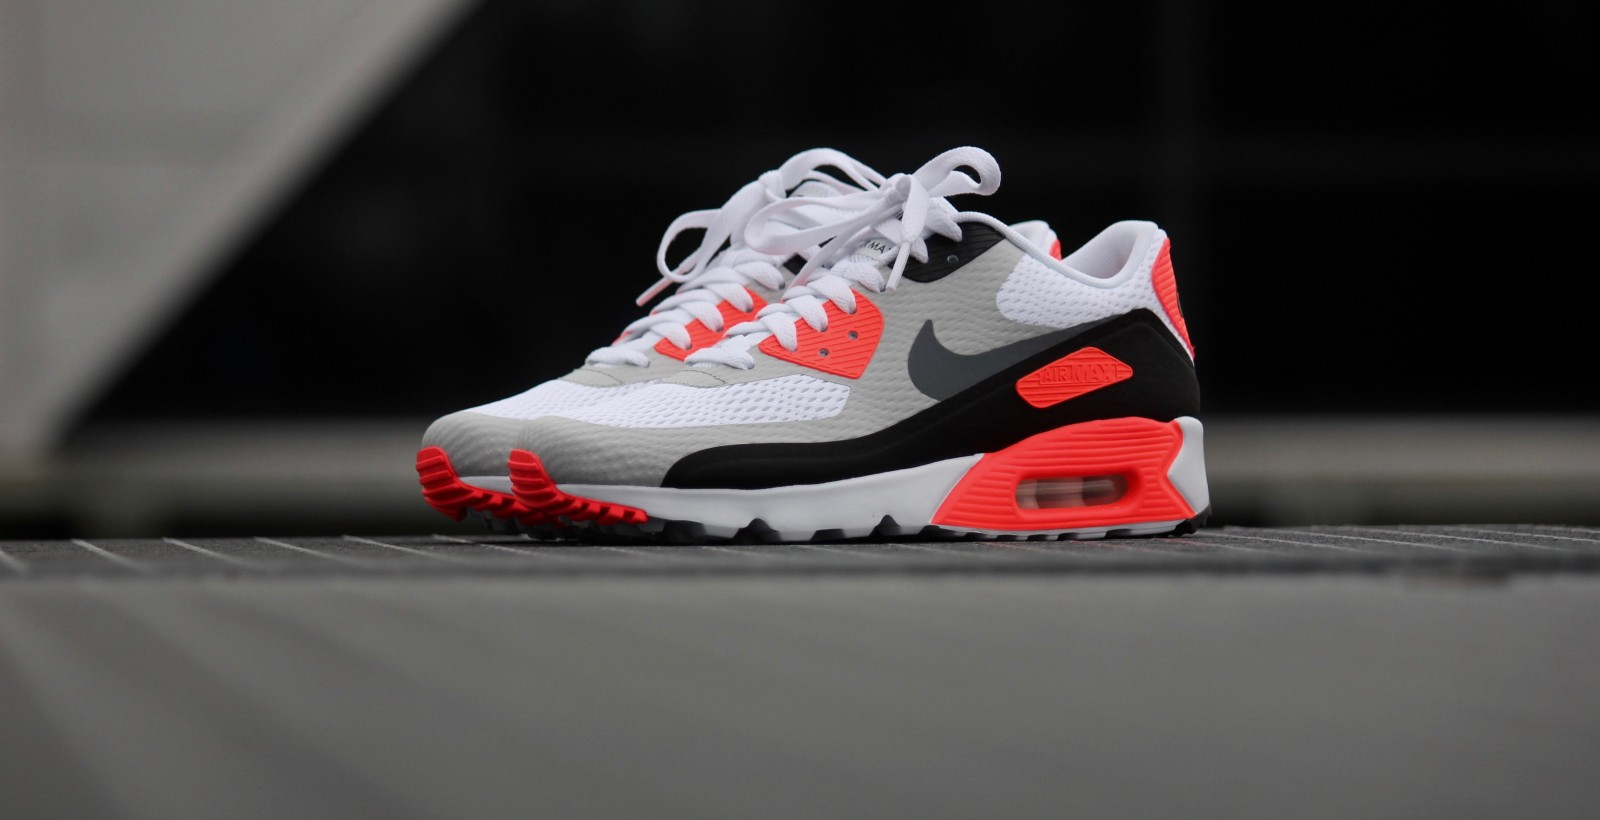 Nike Air Max 90 Ultra Essential Og Infrared Kicks Links